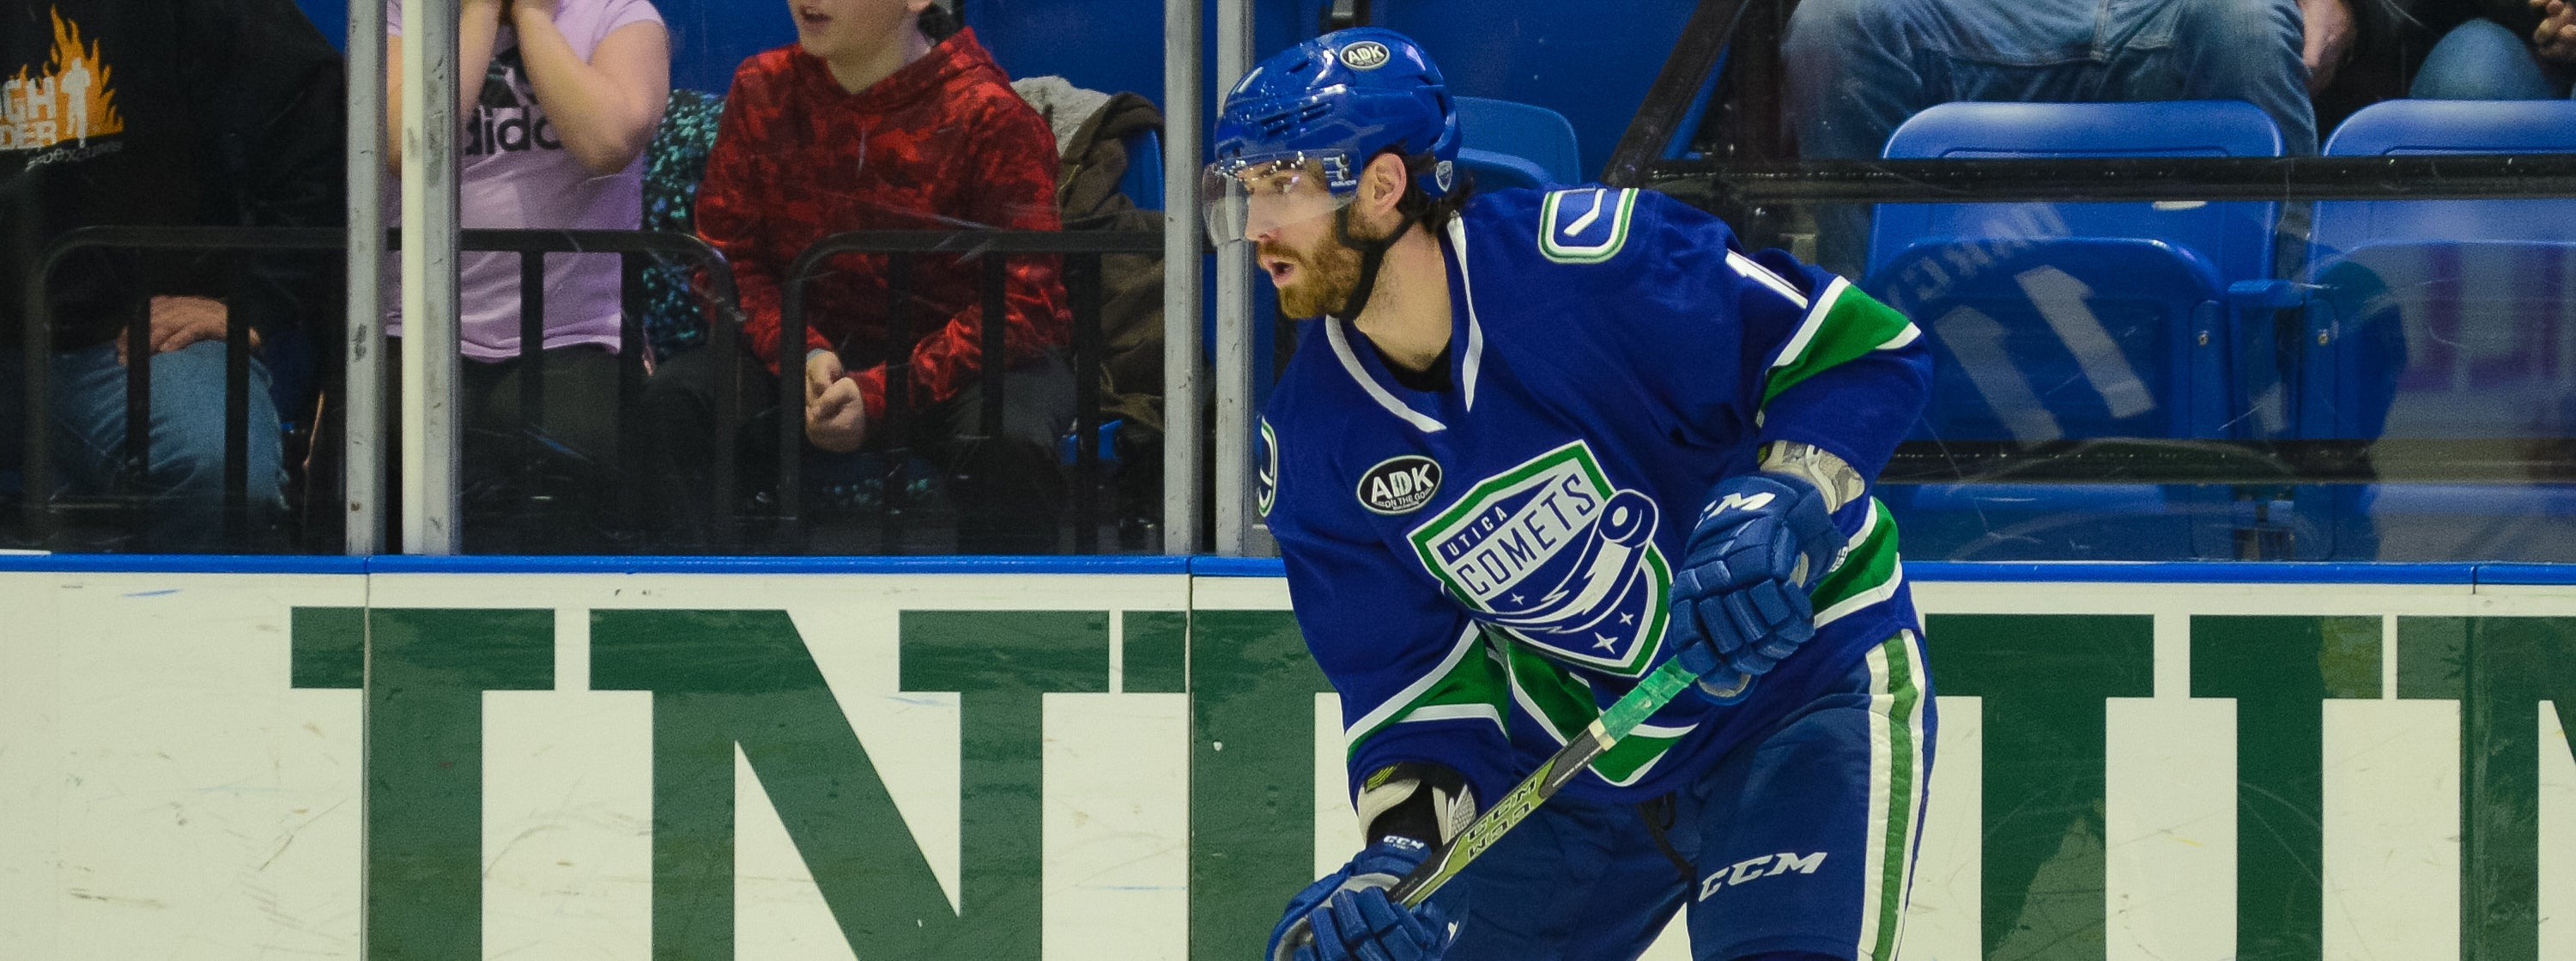 COMETS HEAD EAST TO TAKE ON WOLF PACK